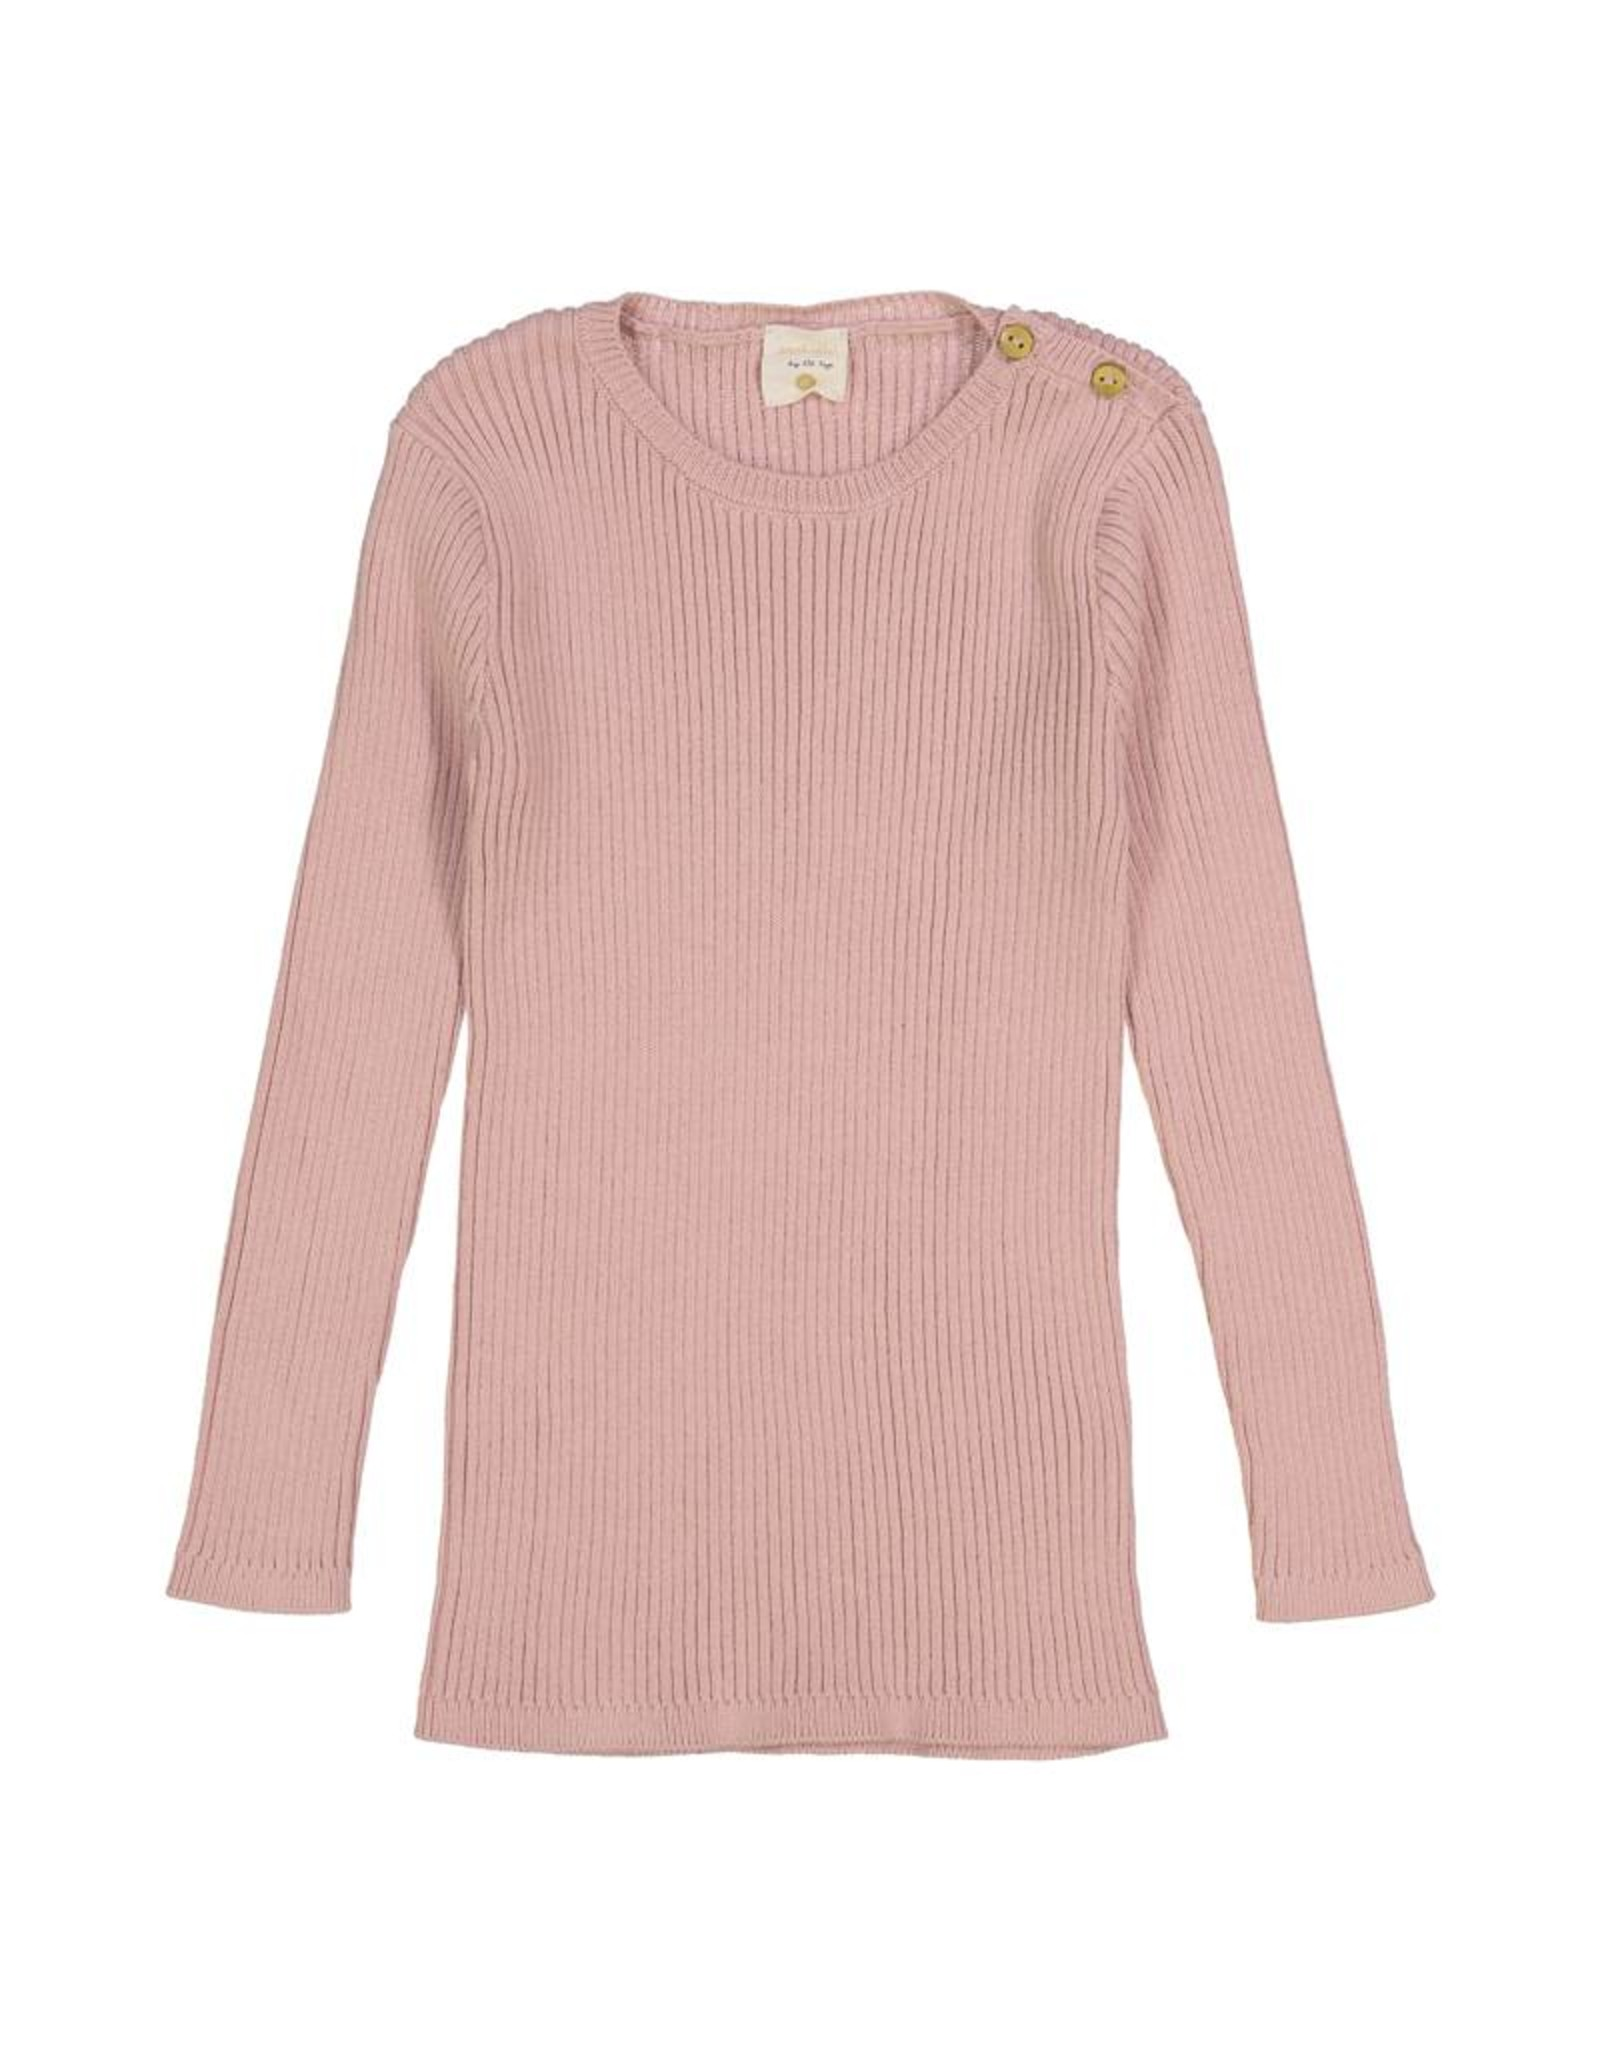 Analogie Analogie SS19 Ribbed Knit Long Sleeve Top